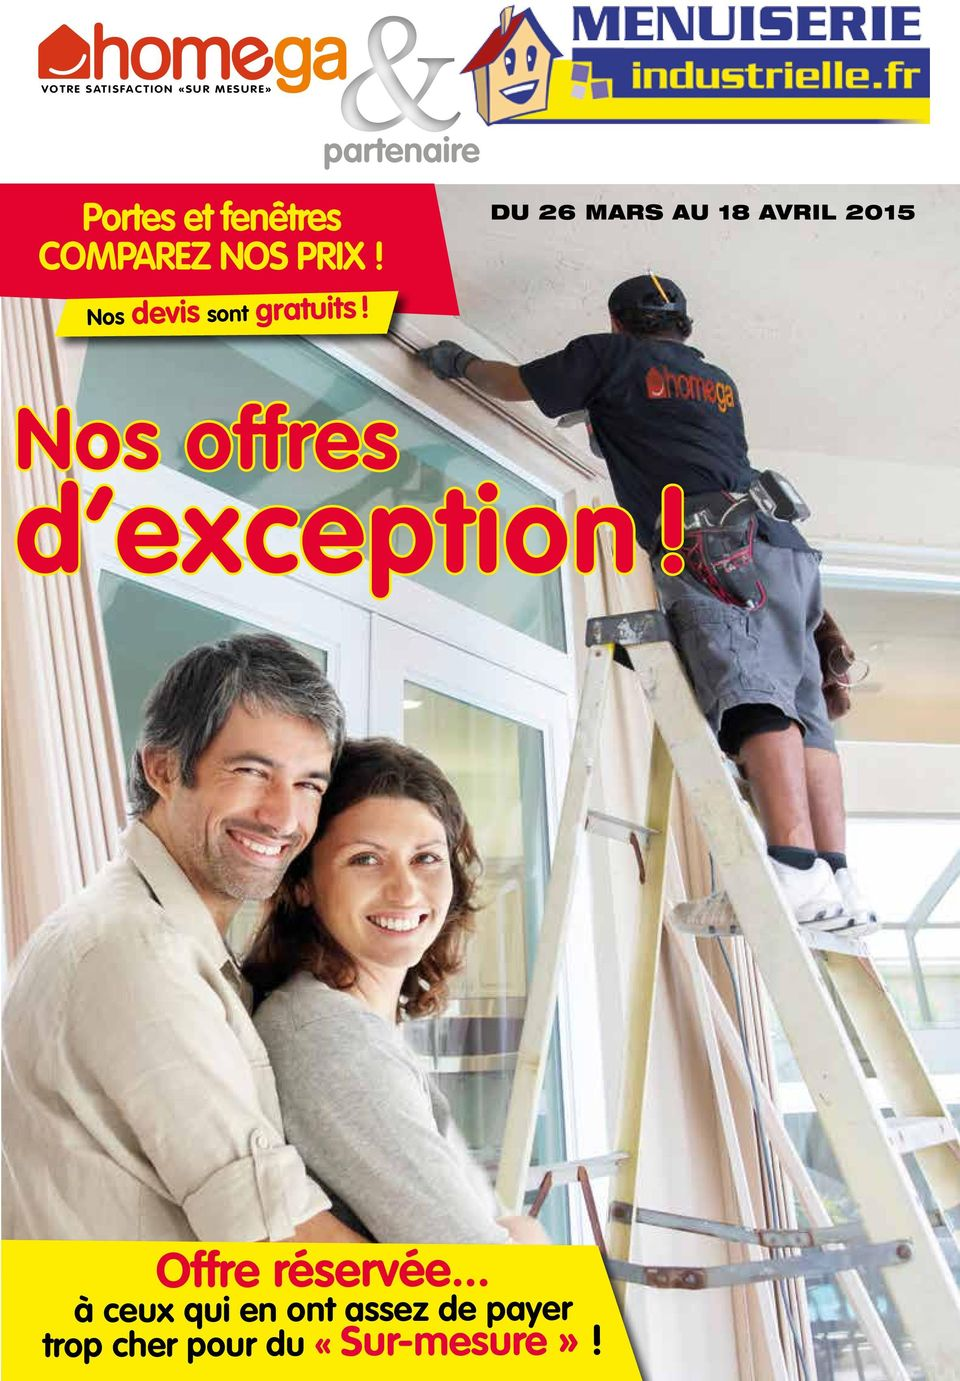 DU 26 MARS AU 18 AVRIL 2015 Nos offres d exception!